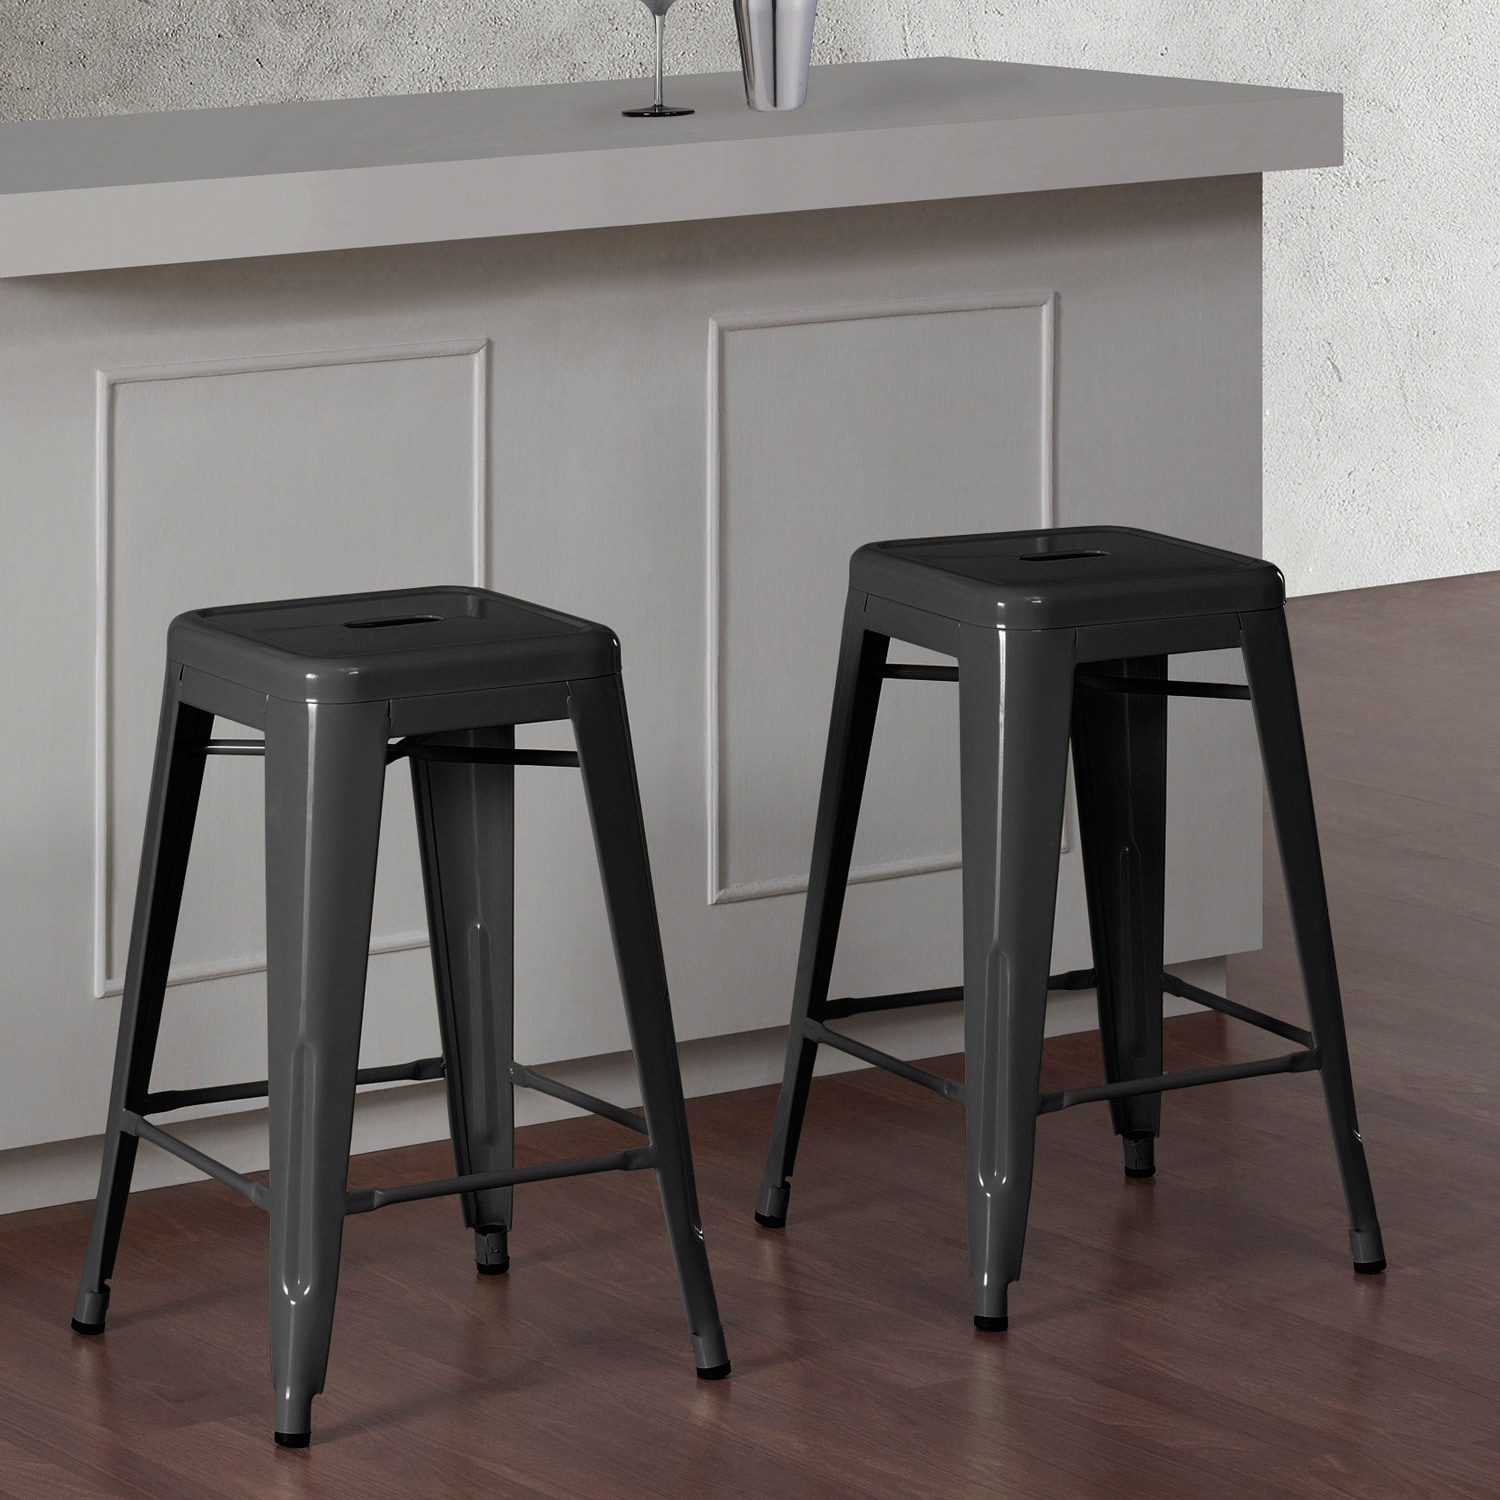 grey metal chairs images